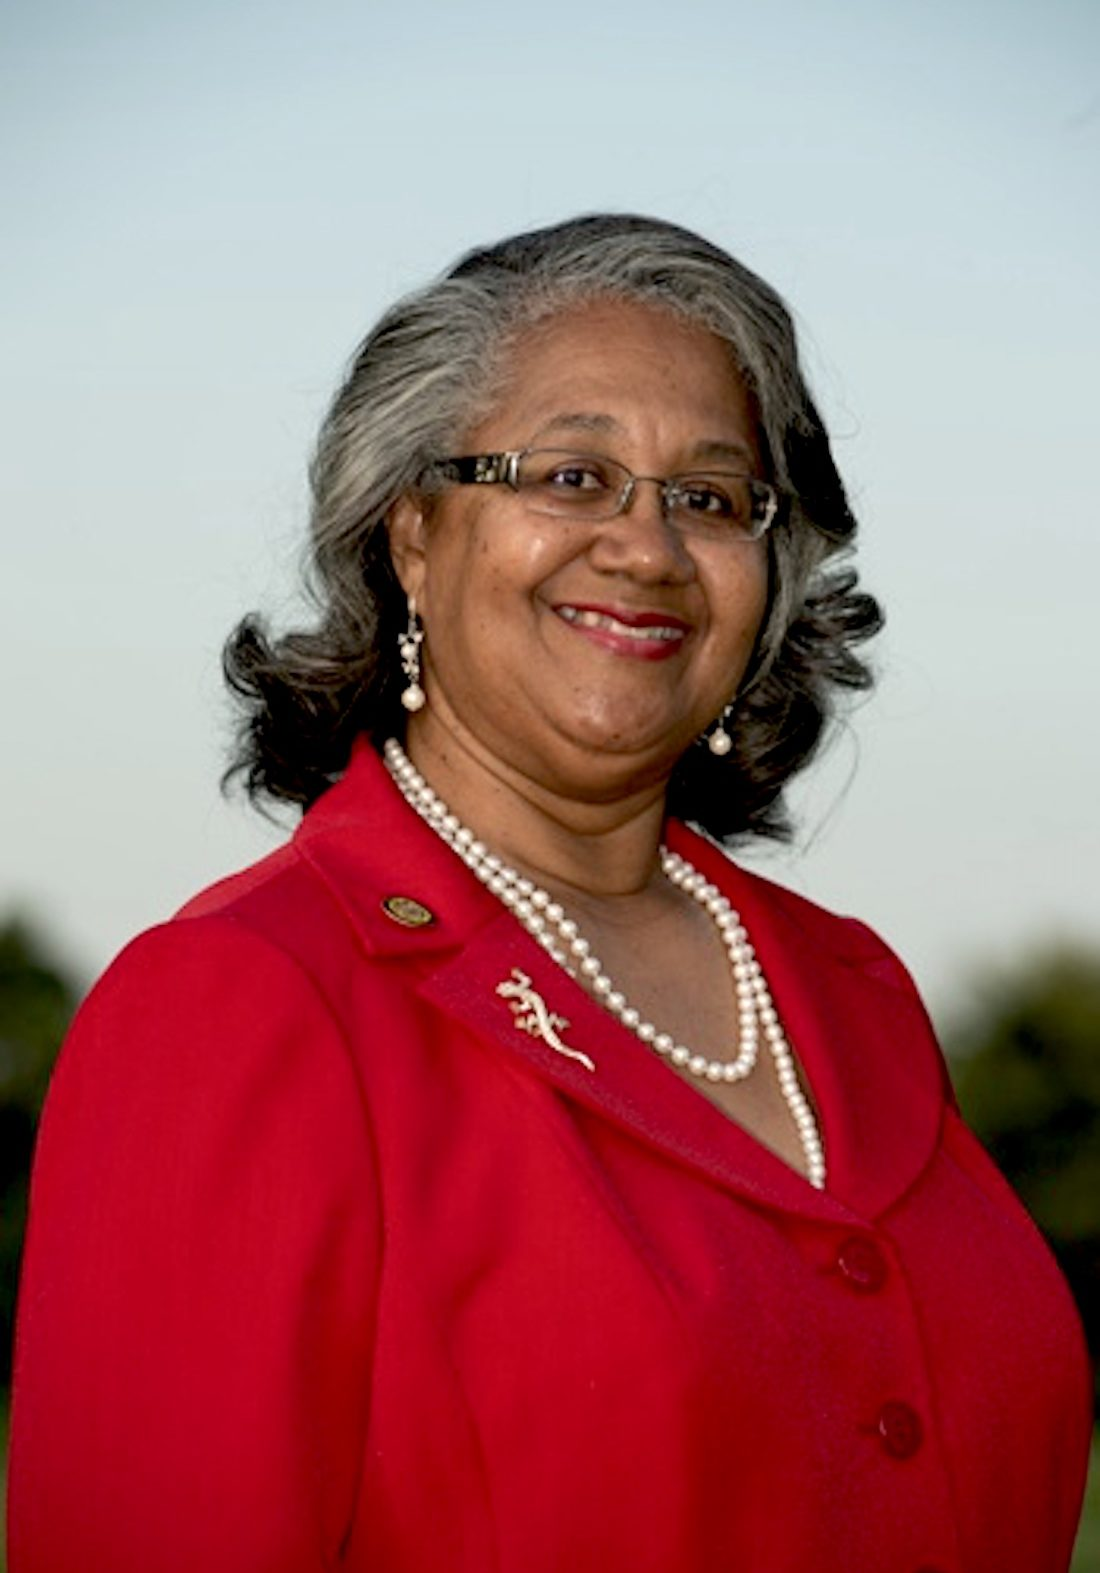 Cheryl D Glenn, Willoughby Avenue, The Five Fifths, KOLUMN Magazine, KOLUMN, African American Politics, Black in Politics